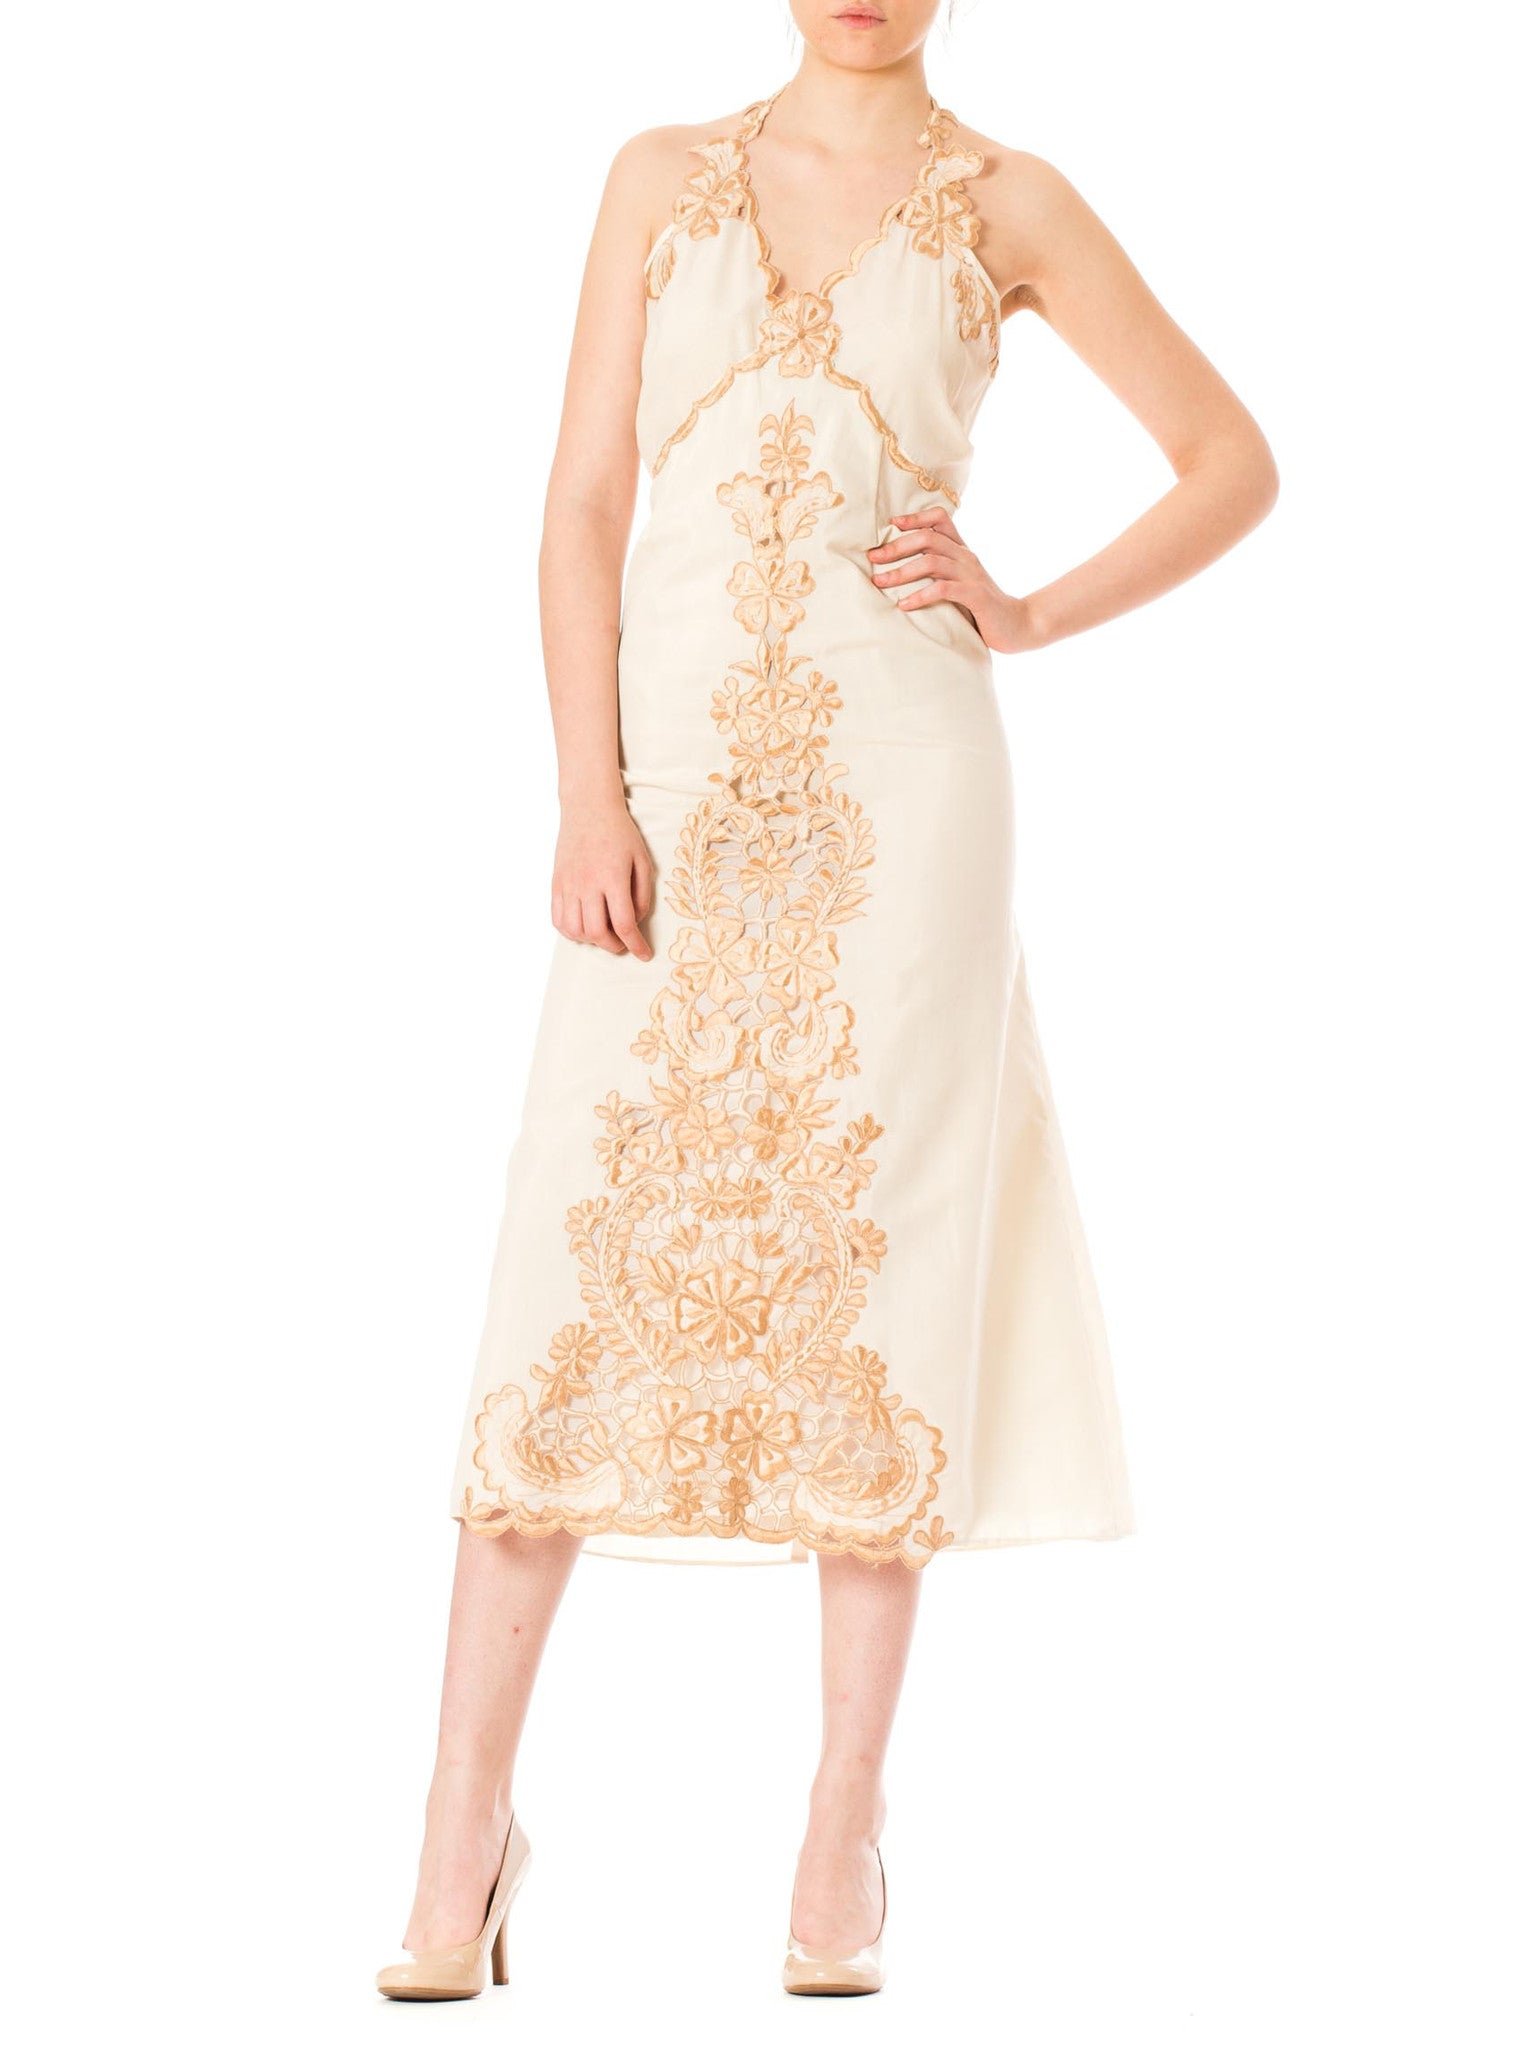 1960s Boho Bridal Embroidered Floral Cutout Lace Halter Dress